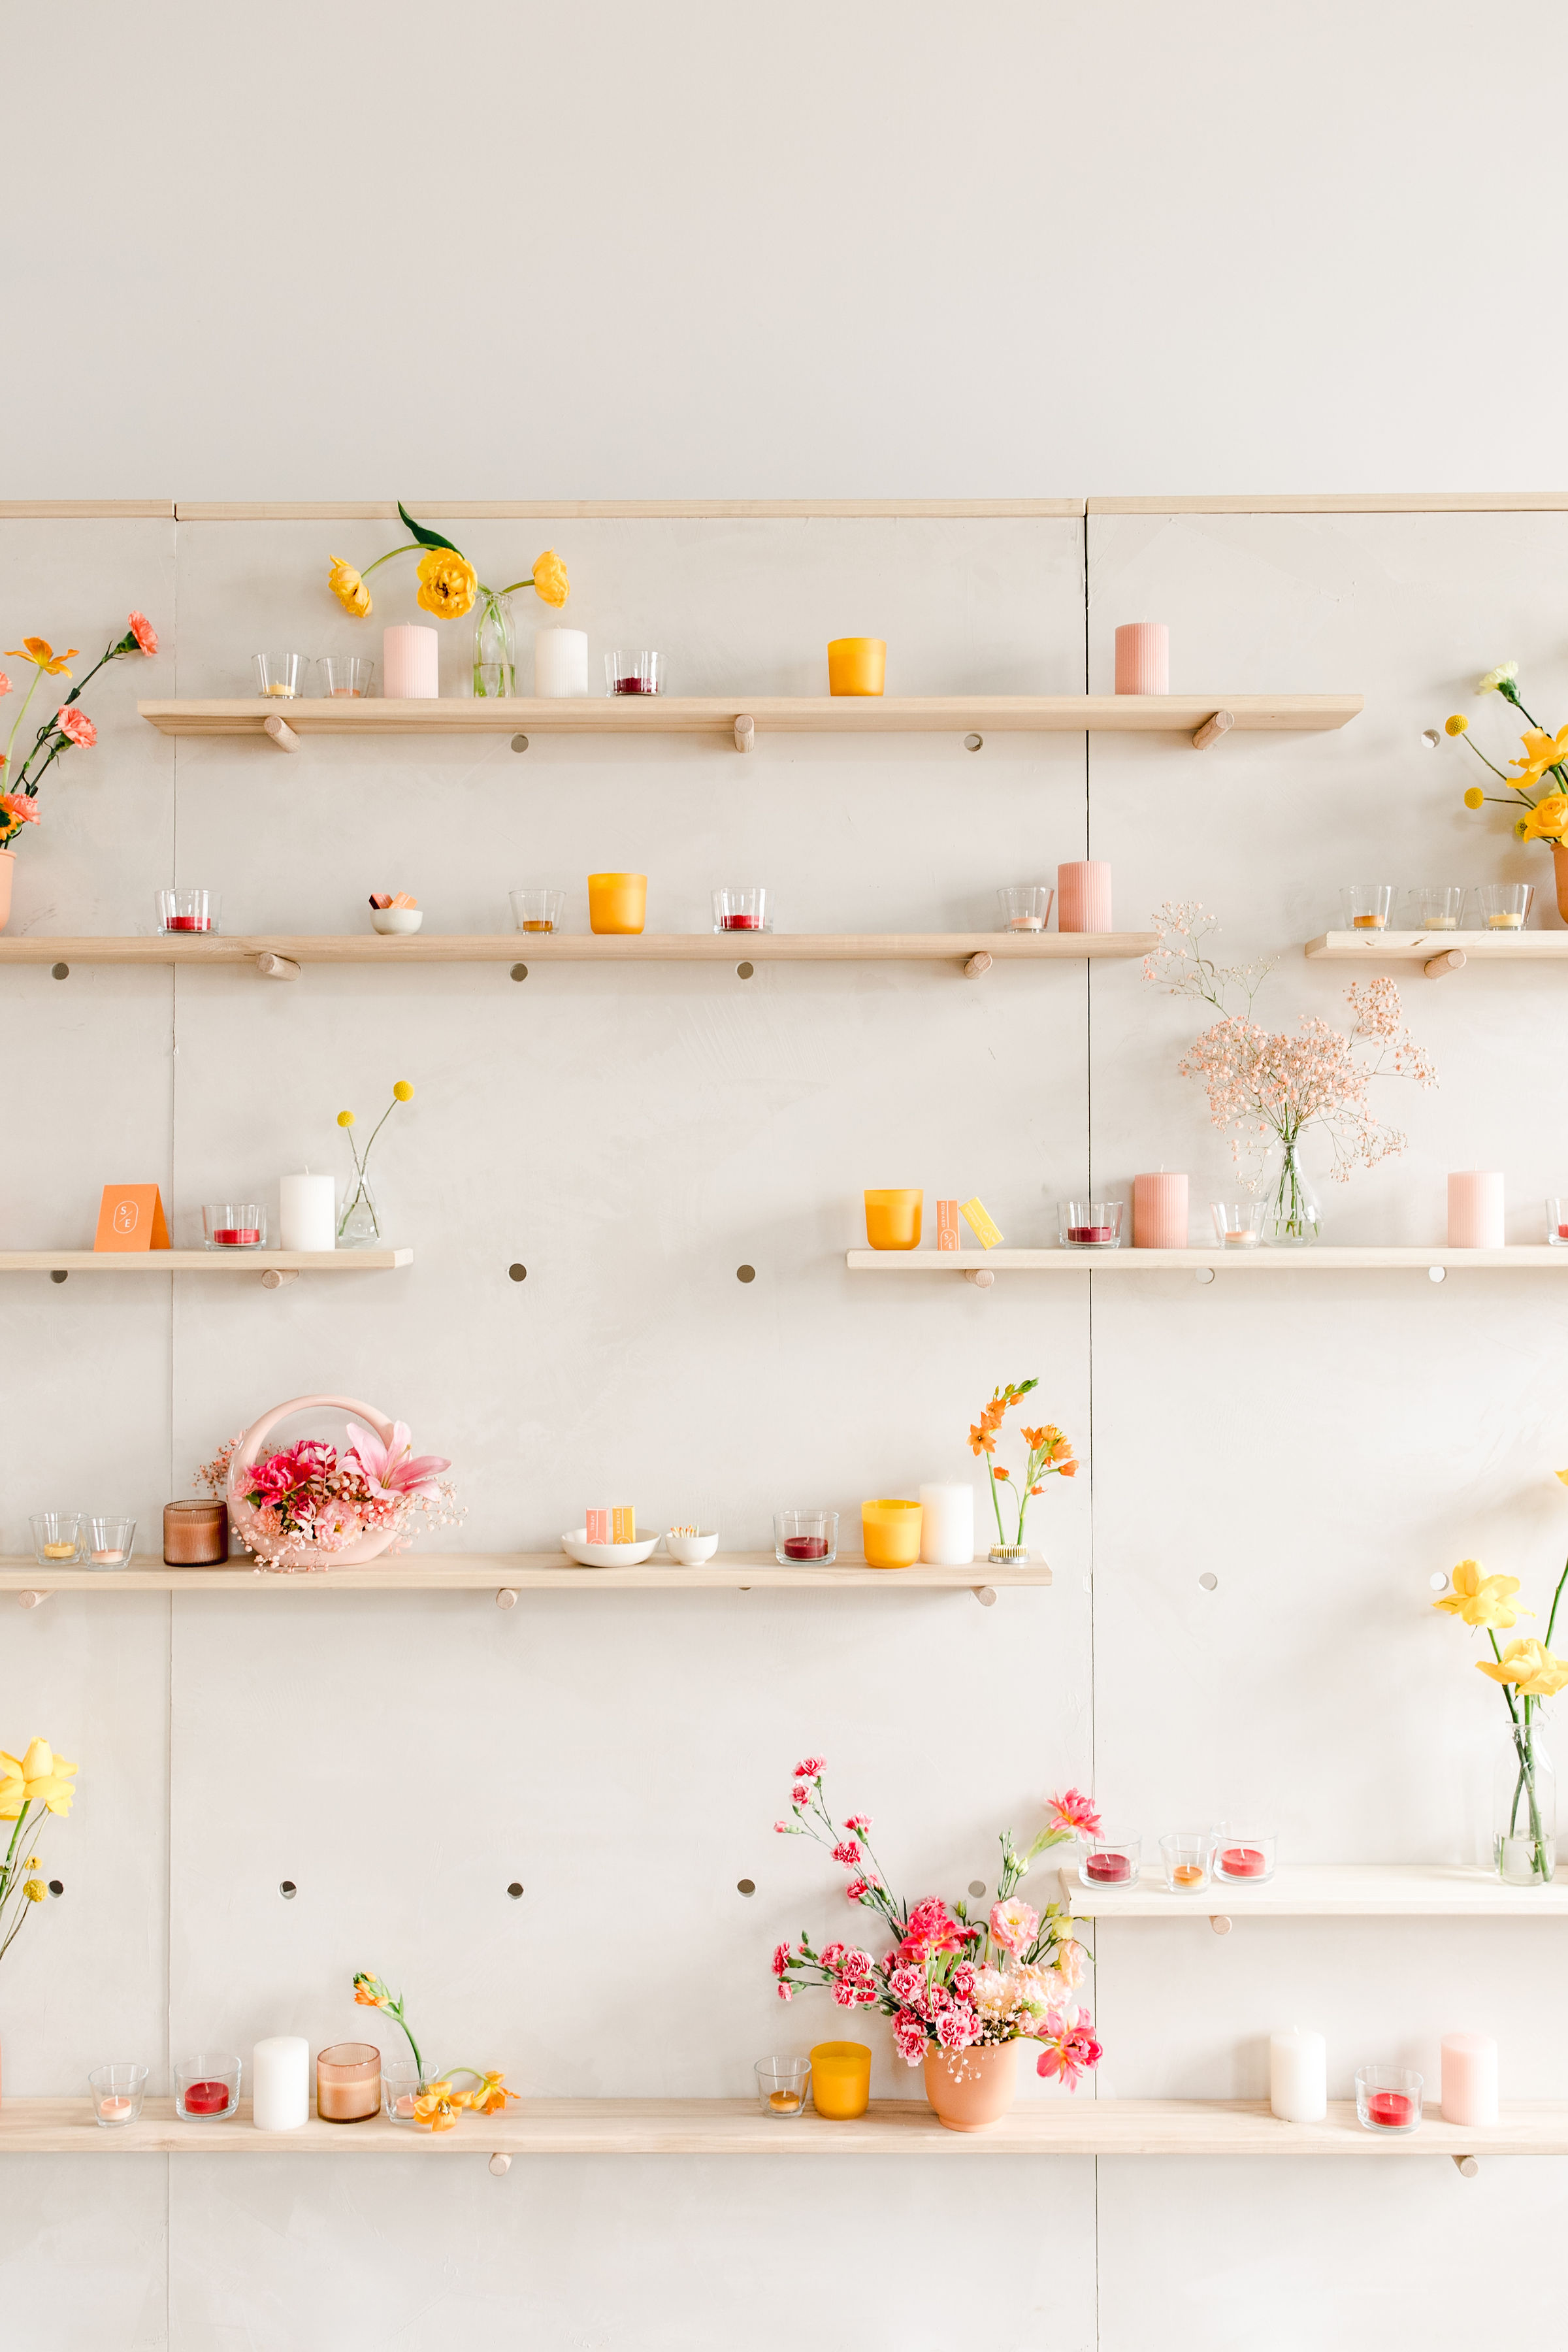 Sunny Brunch - COMING SOON TO ROCKY MOUNTAIN BRIDE / WINTER 2020Design + Styling: Paperdoll + Photography: Shannon Yau + Florals: Faint Floral + Stationery: Paper Ocelot + Wardrobe: Adorn + Hair and Makeup: Top Knot Brides + Venue: The Commons